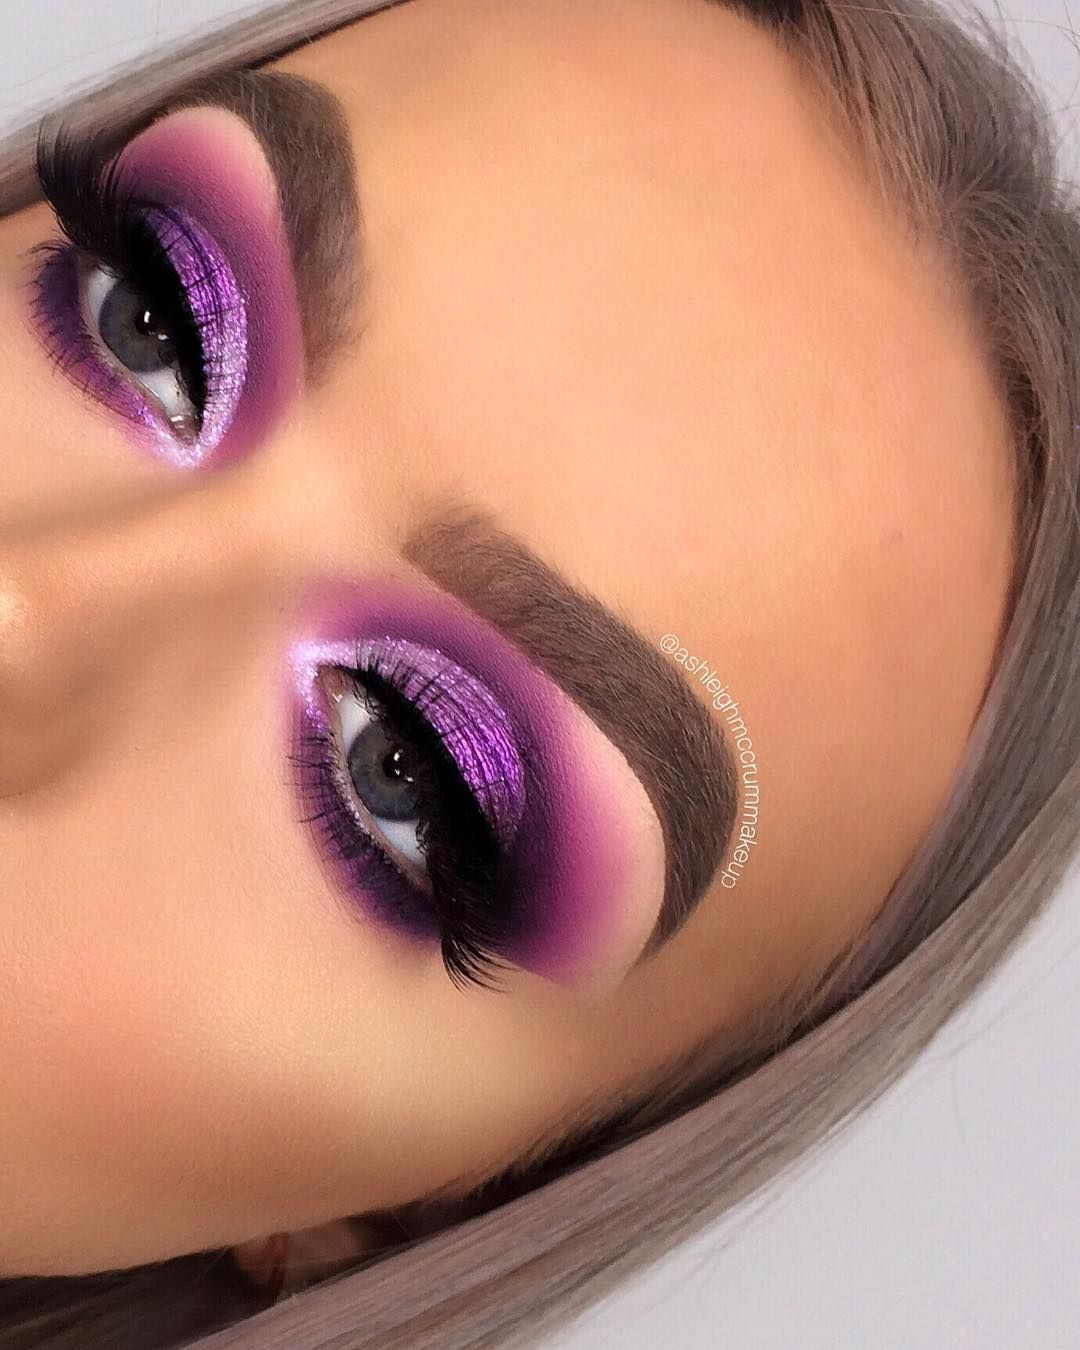 """🌻 ASHLEIGH MCCRUM on Instagram: """"👋🏼 just me again 🙊😋 so happy with how this look turned out! 😍 love working with purples 💜🍇 Also... I filmed this look! Would you guys want…"""""""